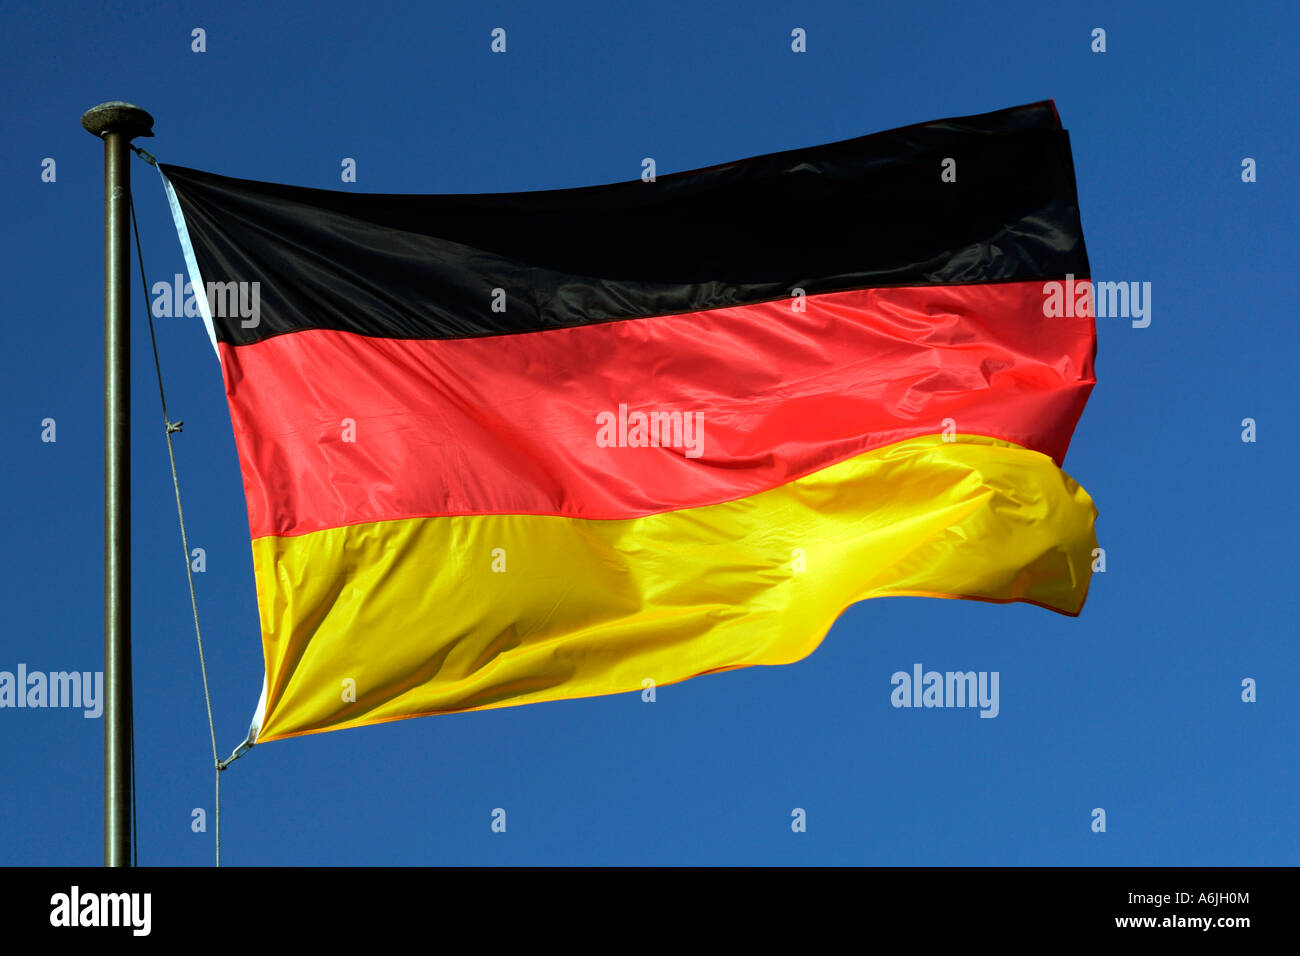 German national flag against blue sky - Stock Image